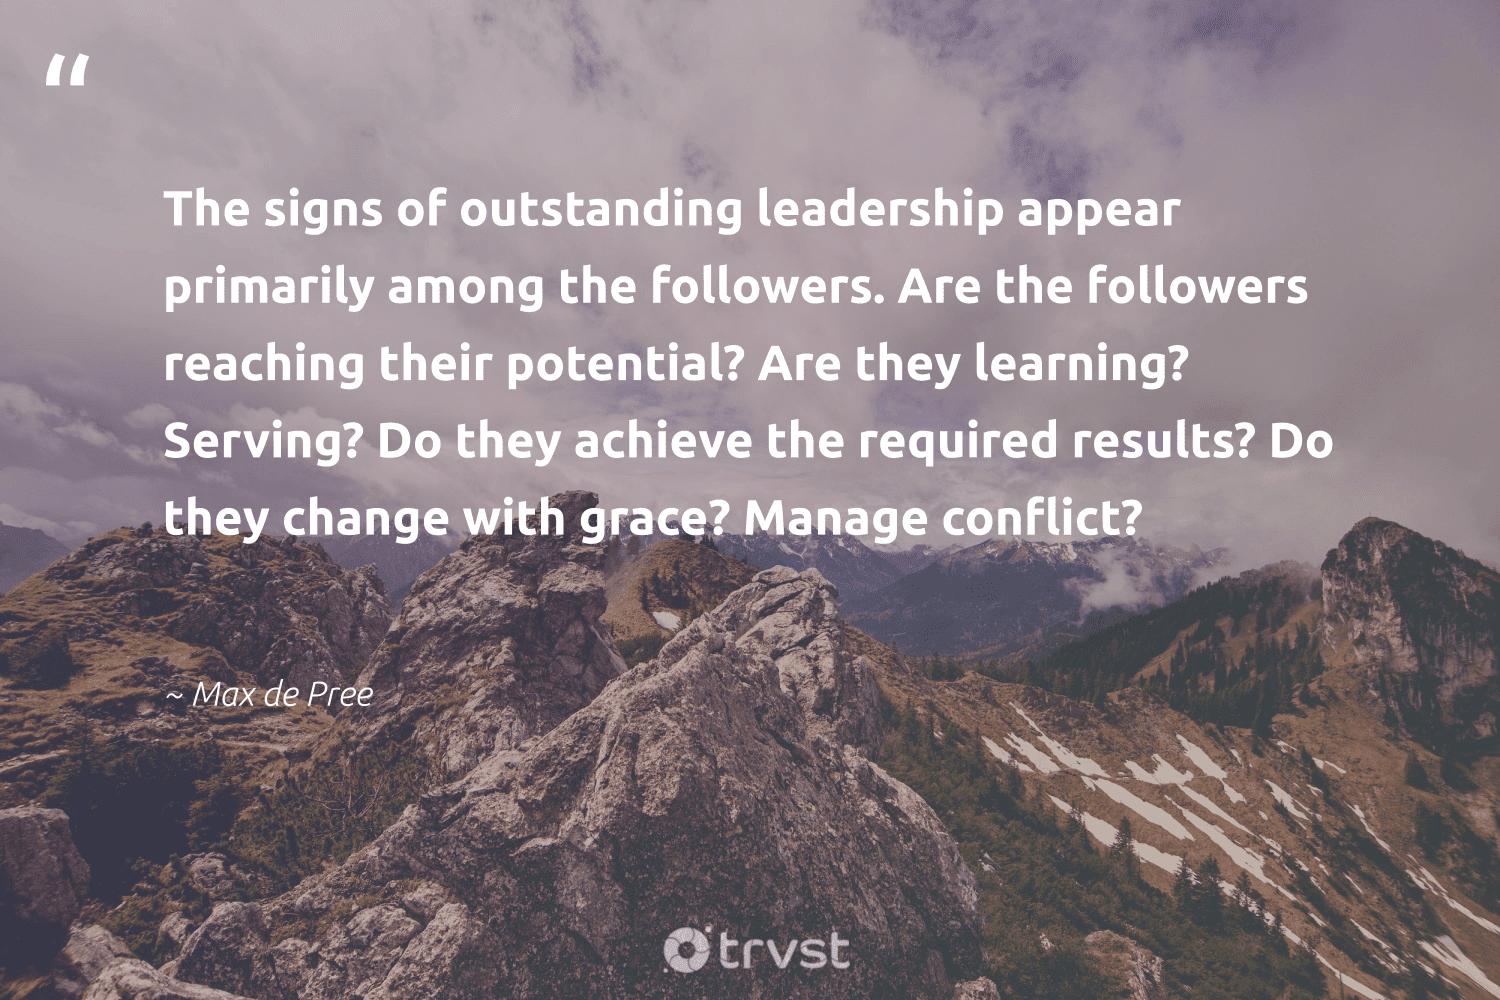 """""""The signs of outstanding leadership appear primarily among the followers. Are the followers reaching their potential? Are they learning? Serving? Do they achieve the required results? Do they change with grace? Manage conflict?""""  - Max de Pree #trvst #quotes #leadership #results #leadershipdevelopment #nevergiveup #softskills #beinspired #leadershipqualities #futureofwork #begreat #changetheworld"""